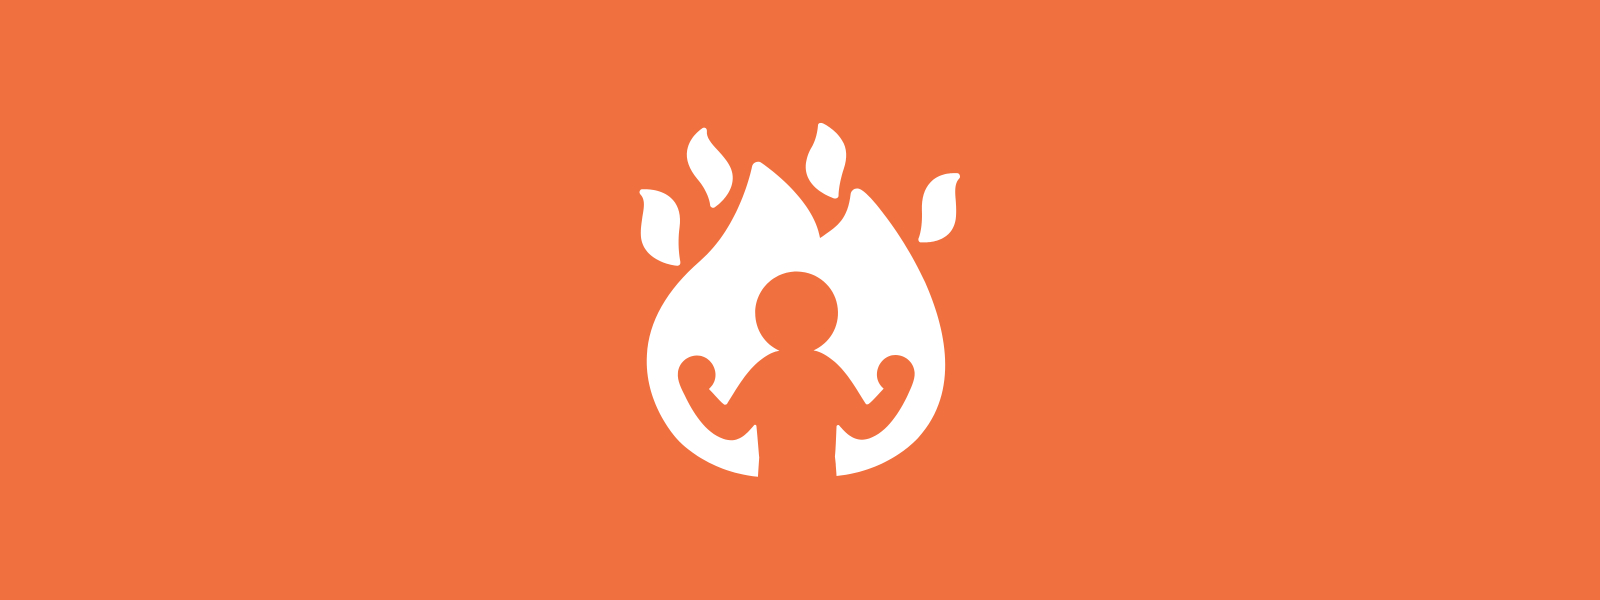 Icon background of person empowered within fire